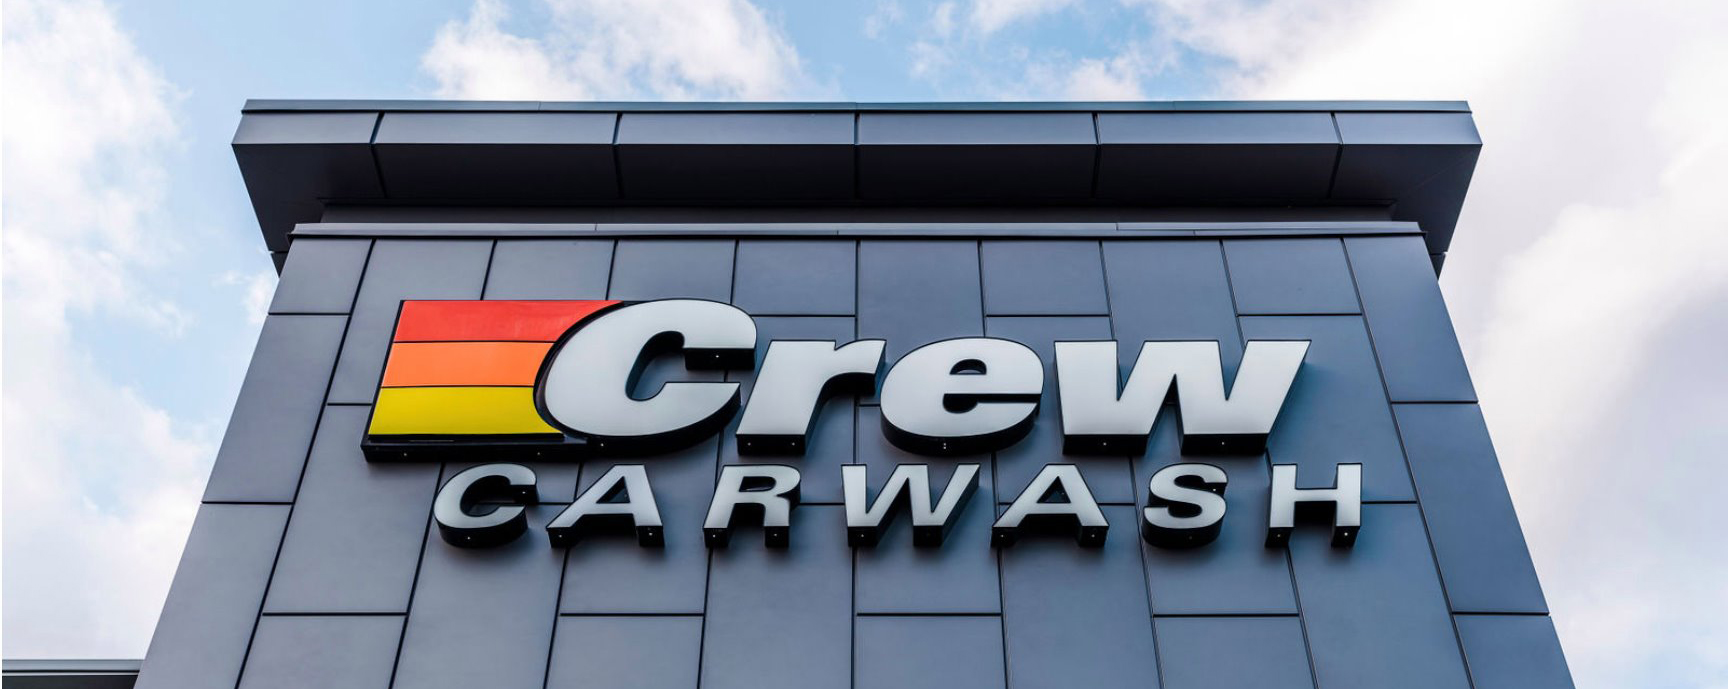 SignCraft Crew Carwash Channel Letter Sign